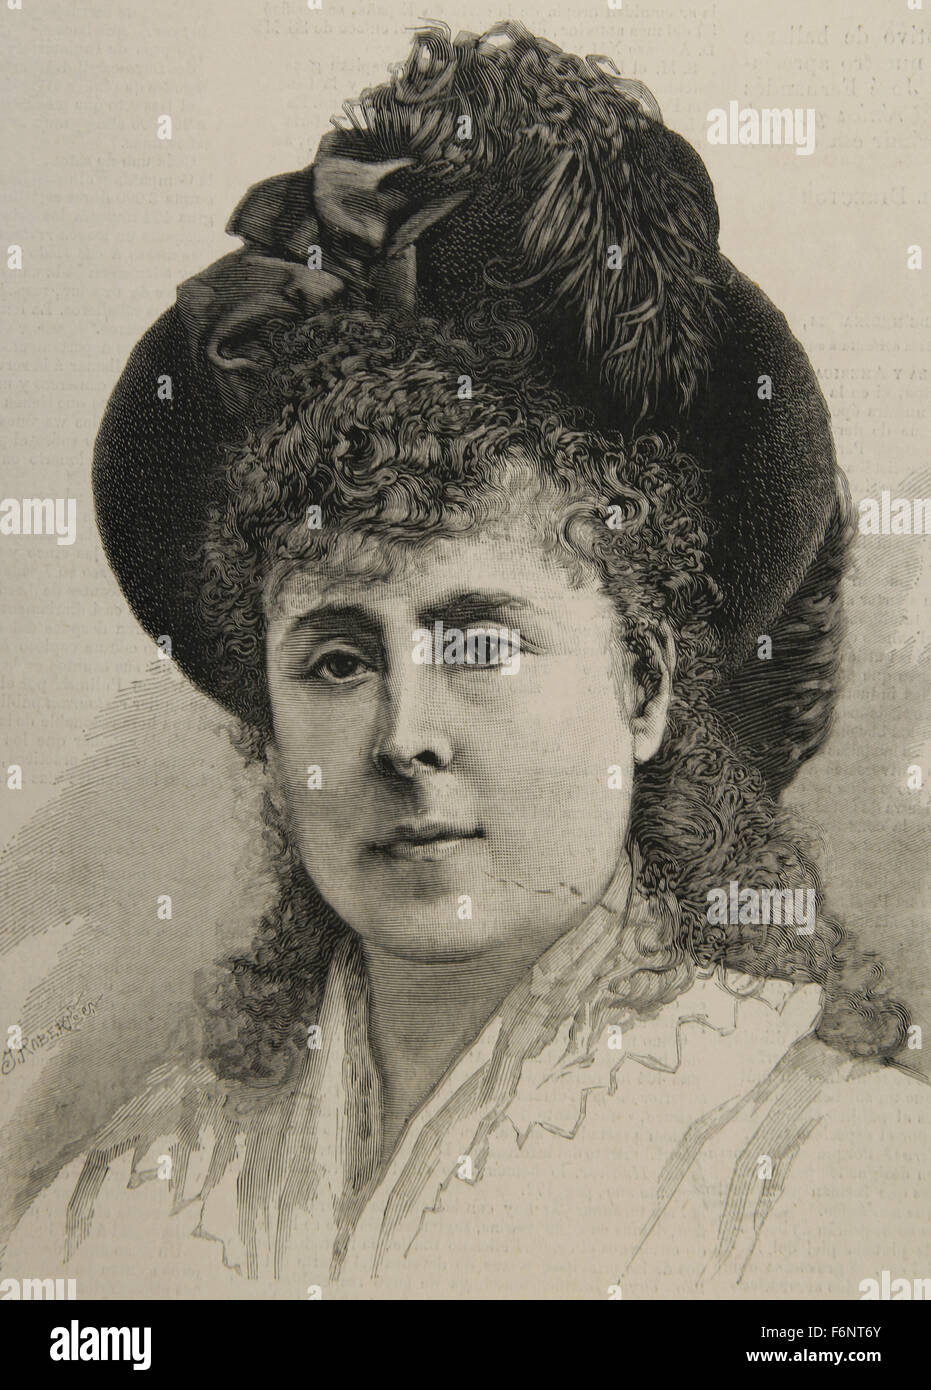 Angela Maria Apolonia Perez de Barradas and Bernuy (1827-1903), Dowager Duchess of Medinaceli and 1st Duchess of - Stock Image